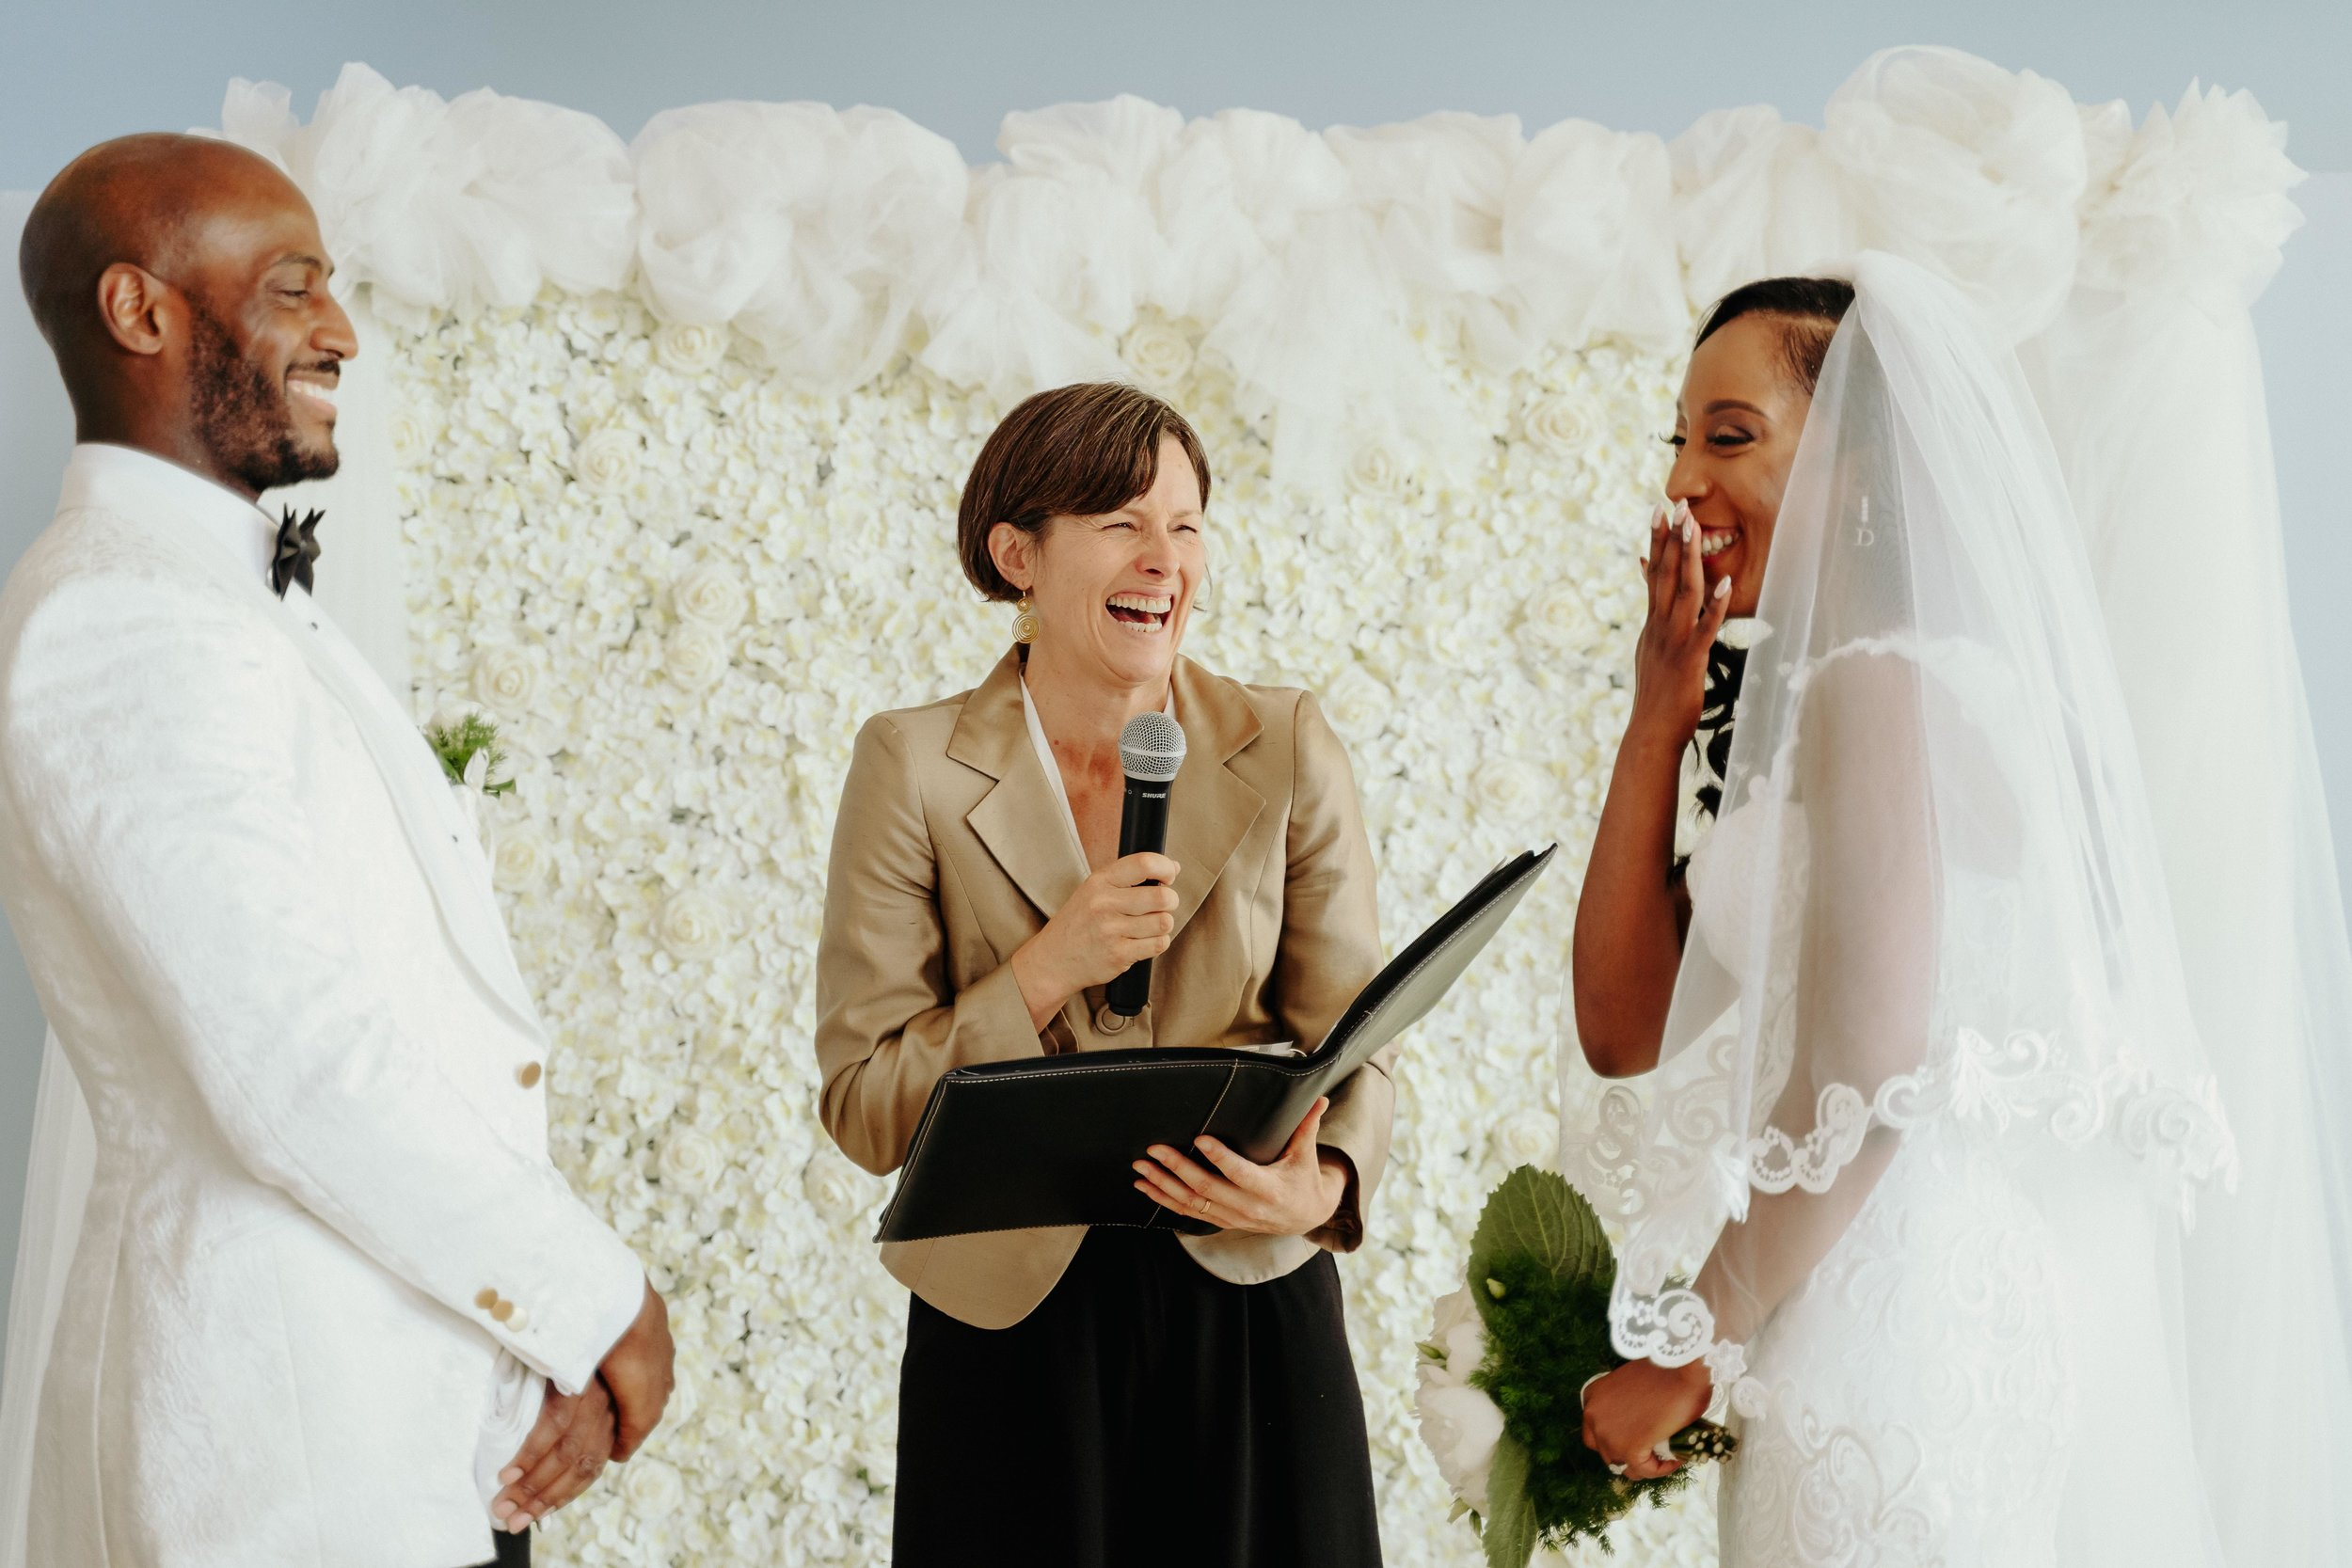 Offer an alternative to religious ceremonies - We plan and conduct personalised non-religious ceremonies that combine a personal touch with a strong sense of ritual. Our celebrants can provide ceremonies to acknowledge all life celebrations and significant events: from wedding ceremonies to family milestones and funerals